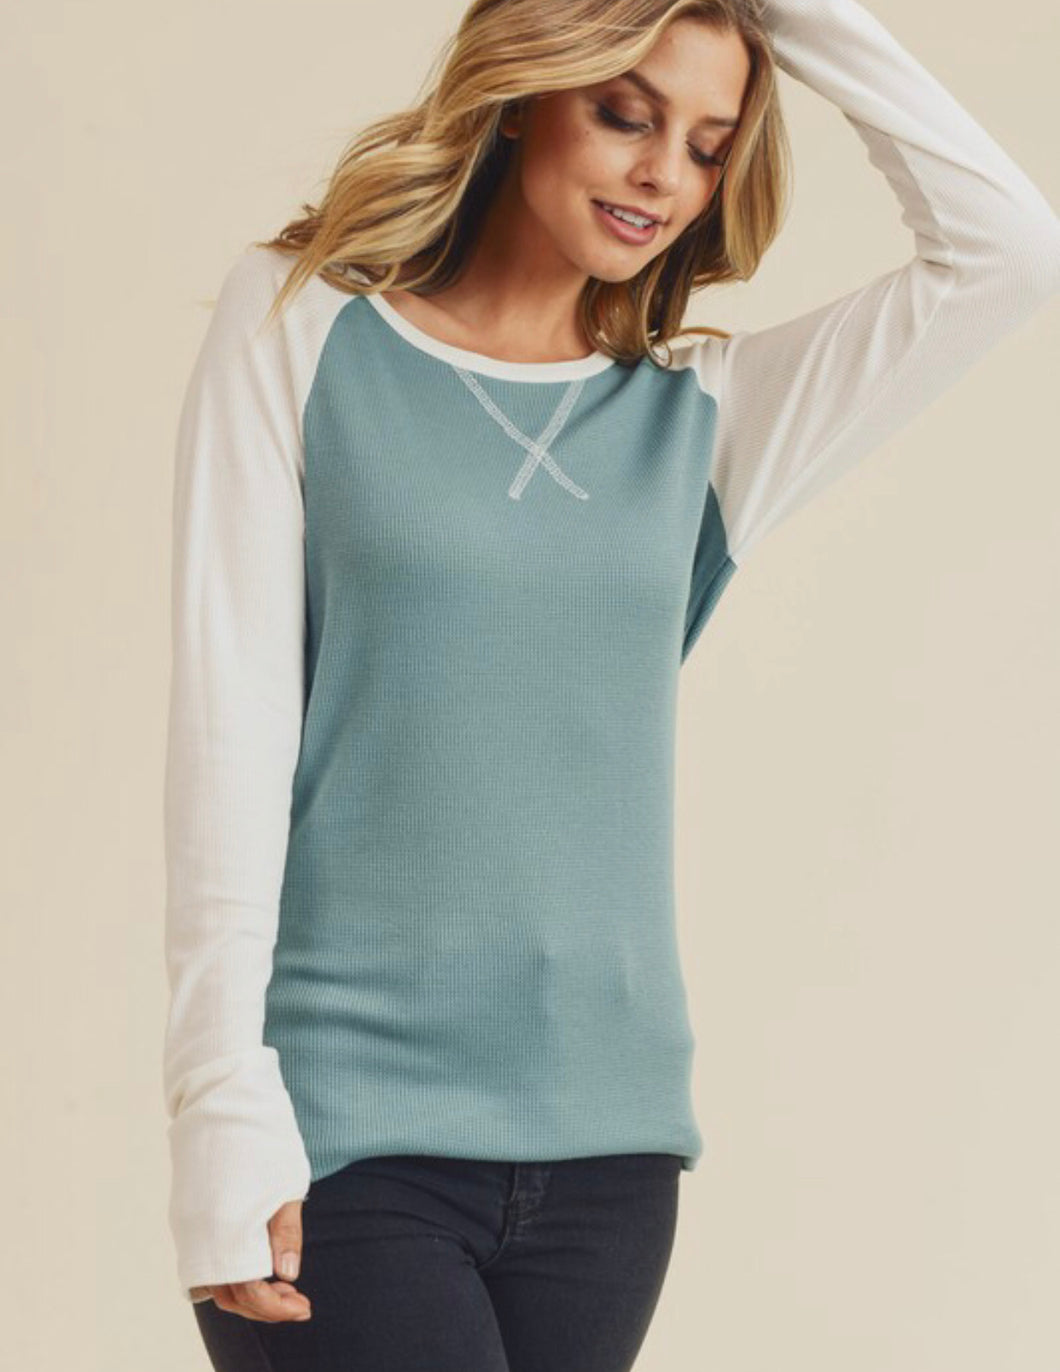 Teal Thermal Baseball Long Sleeve Top